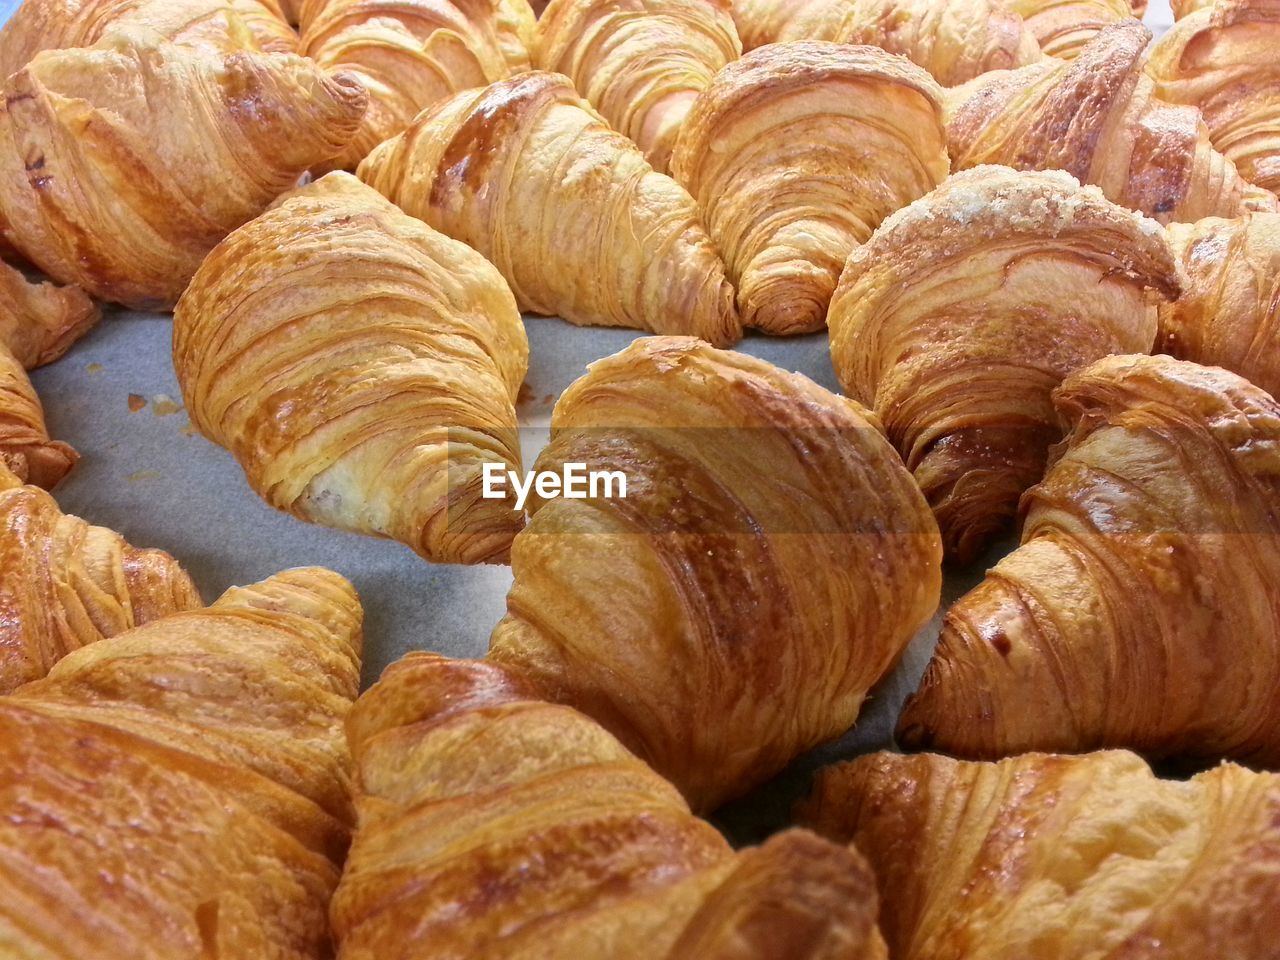 croissant, food, baked, french food, food and drink, brown, backgrounds, close-up, full frame, bread, sweet bun, no people, freshness, sweet food, puff pastry, ready-to-eat, indoors, healthy eating, day